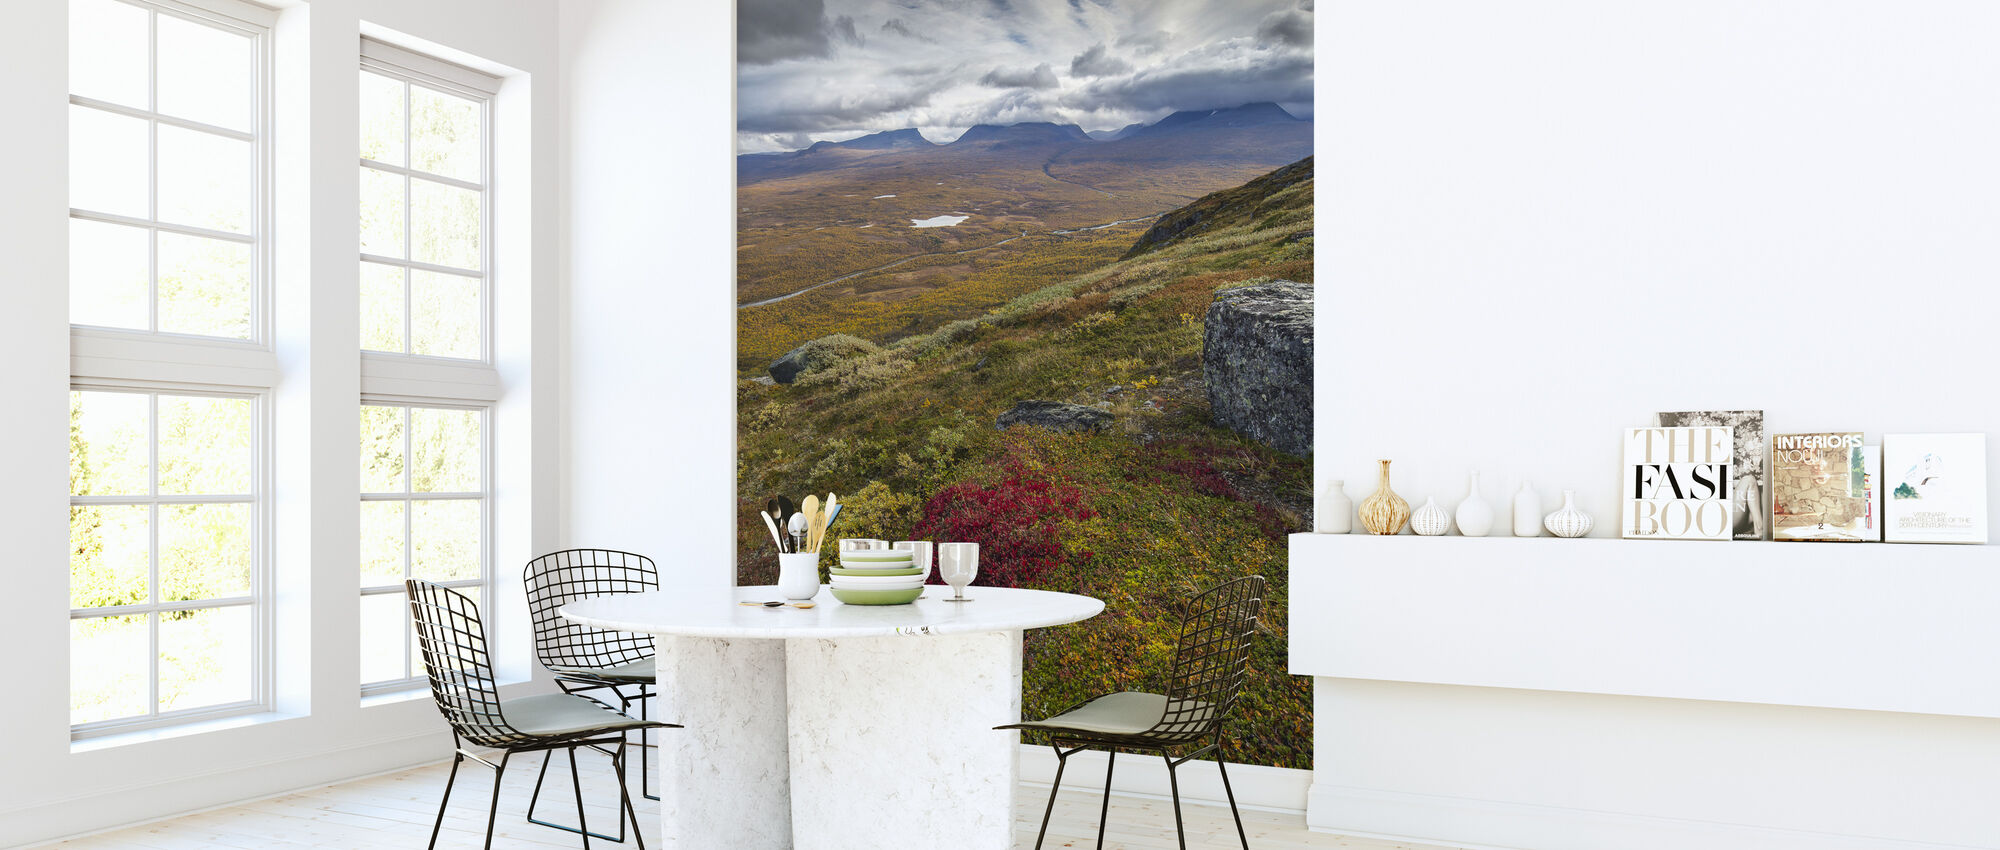 Nuolja Mountain, Abisko - Sweden - Wallpaper - Kitchen